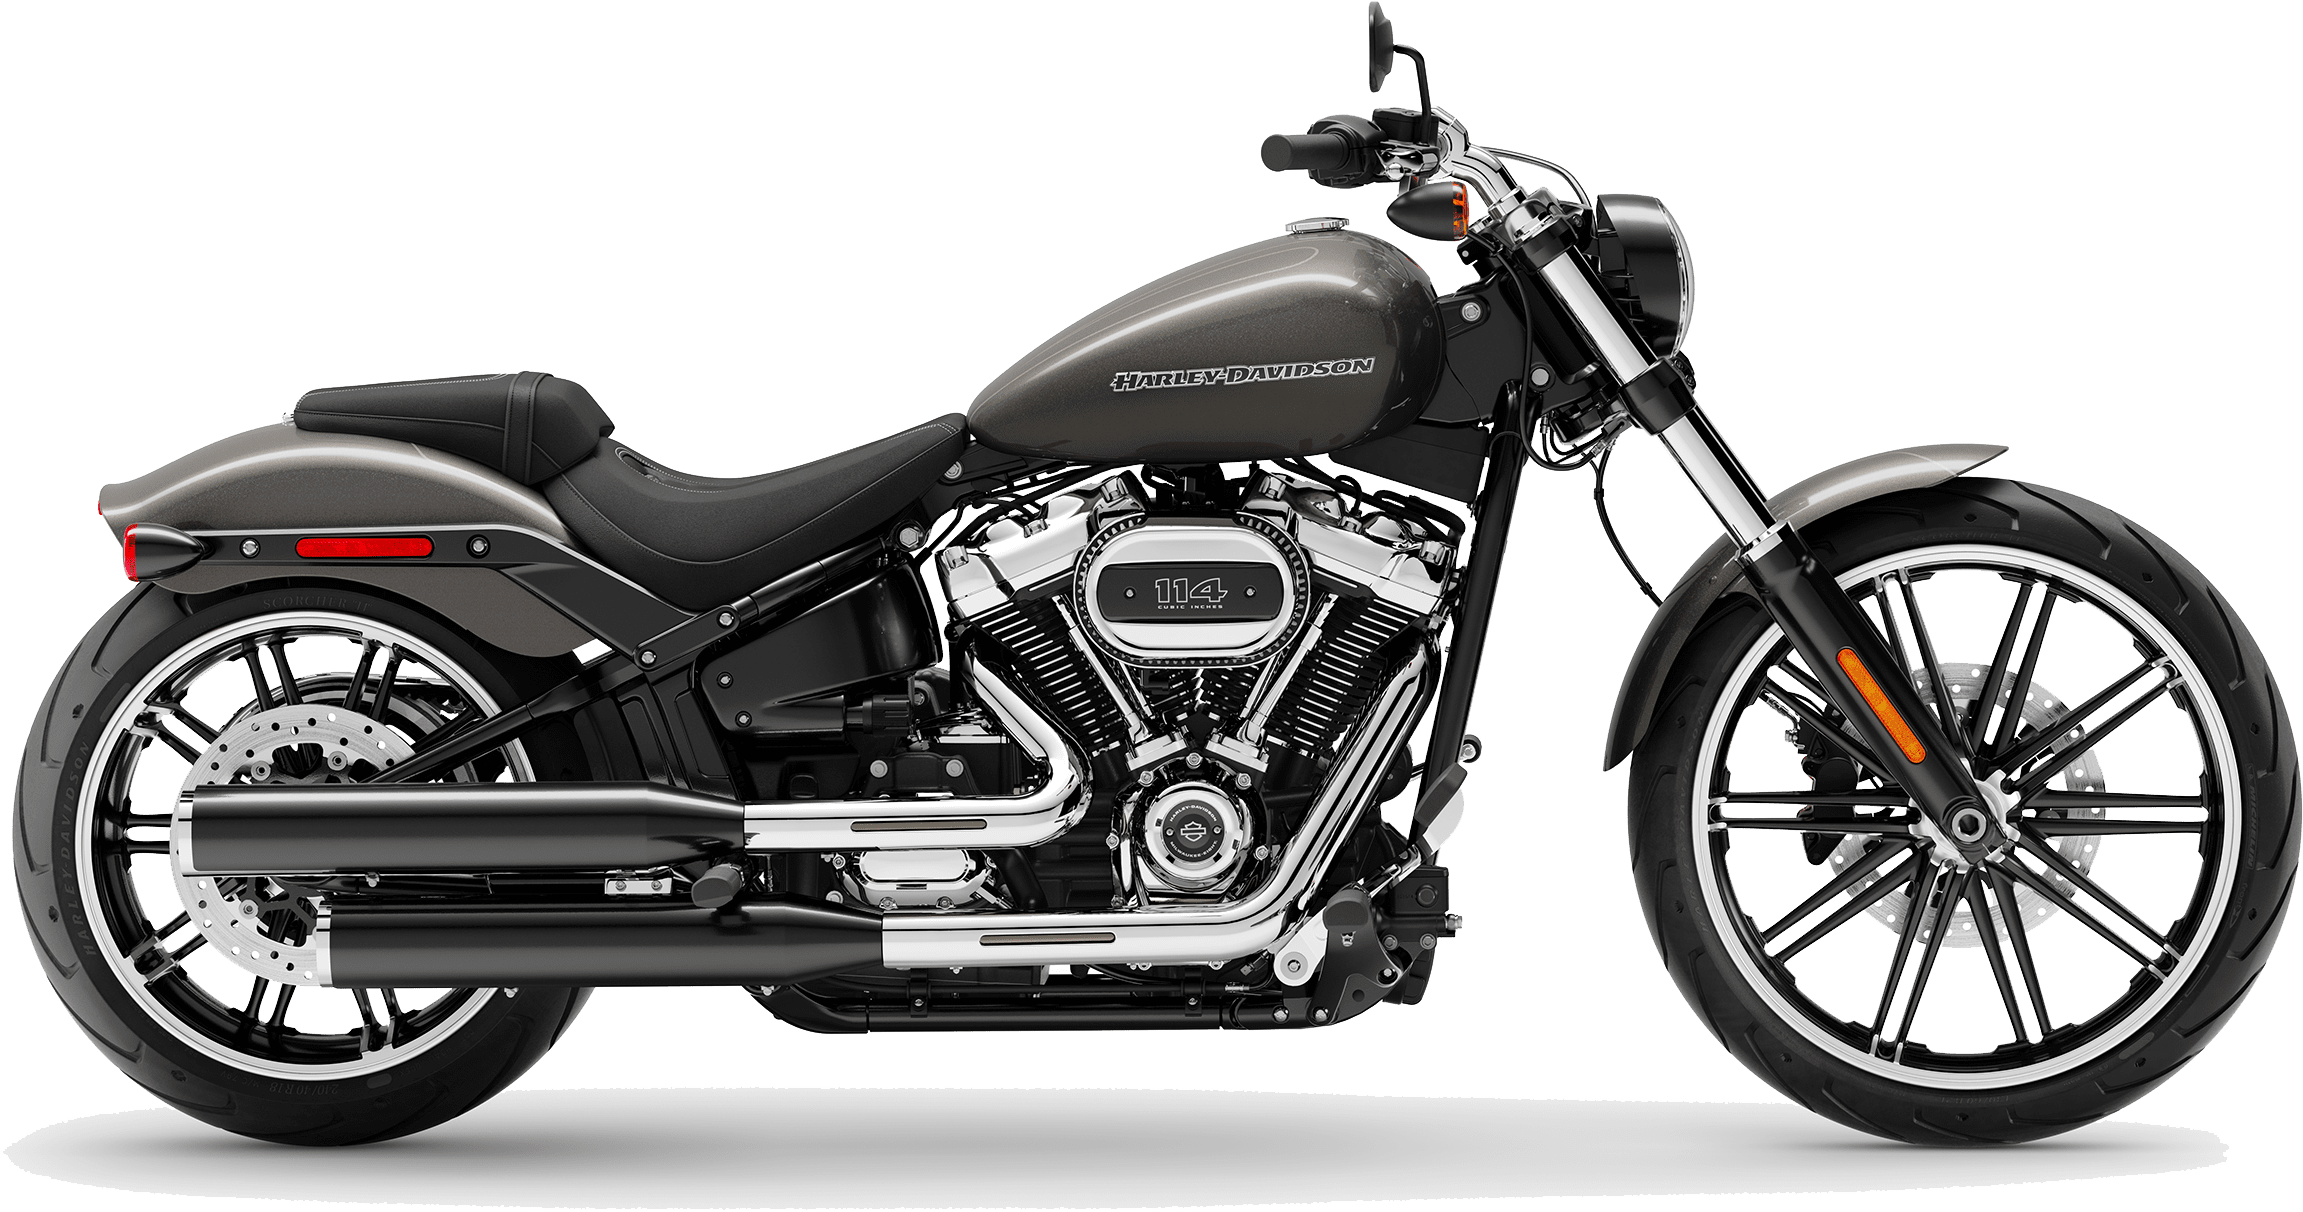 2019 Harley-Davidson Softail Breakout Industrial Grey